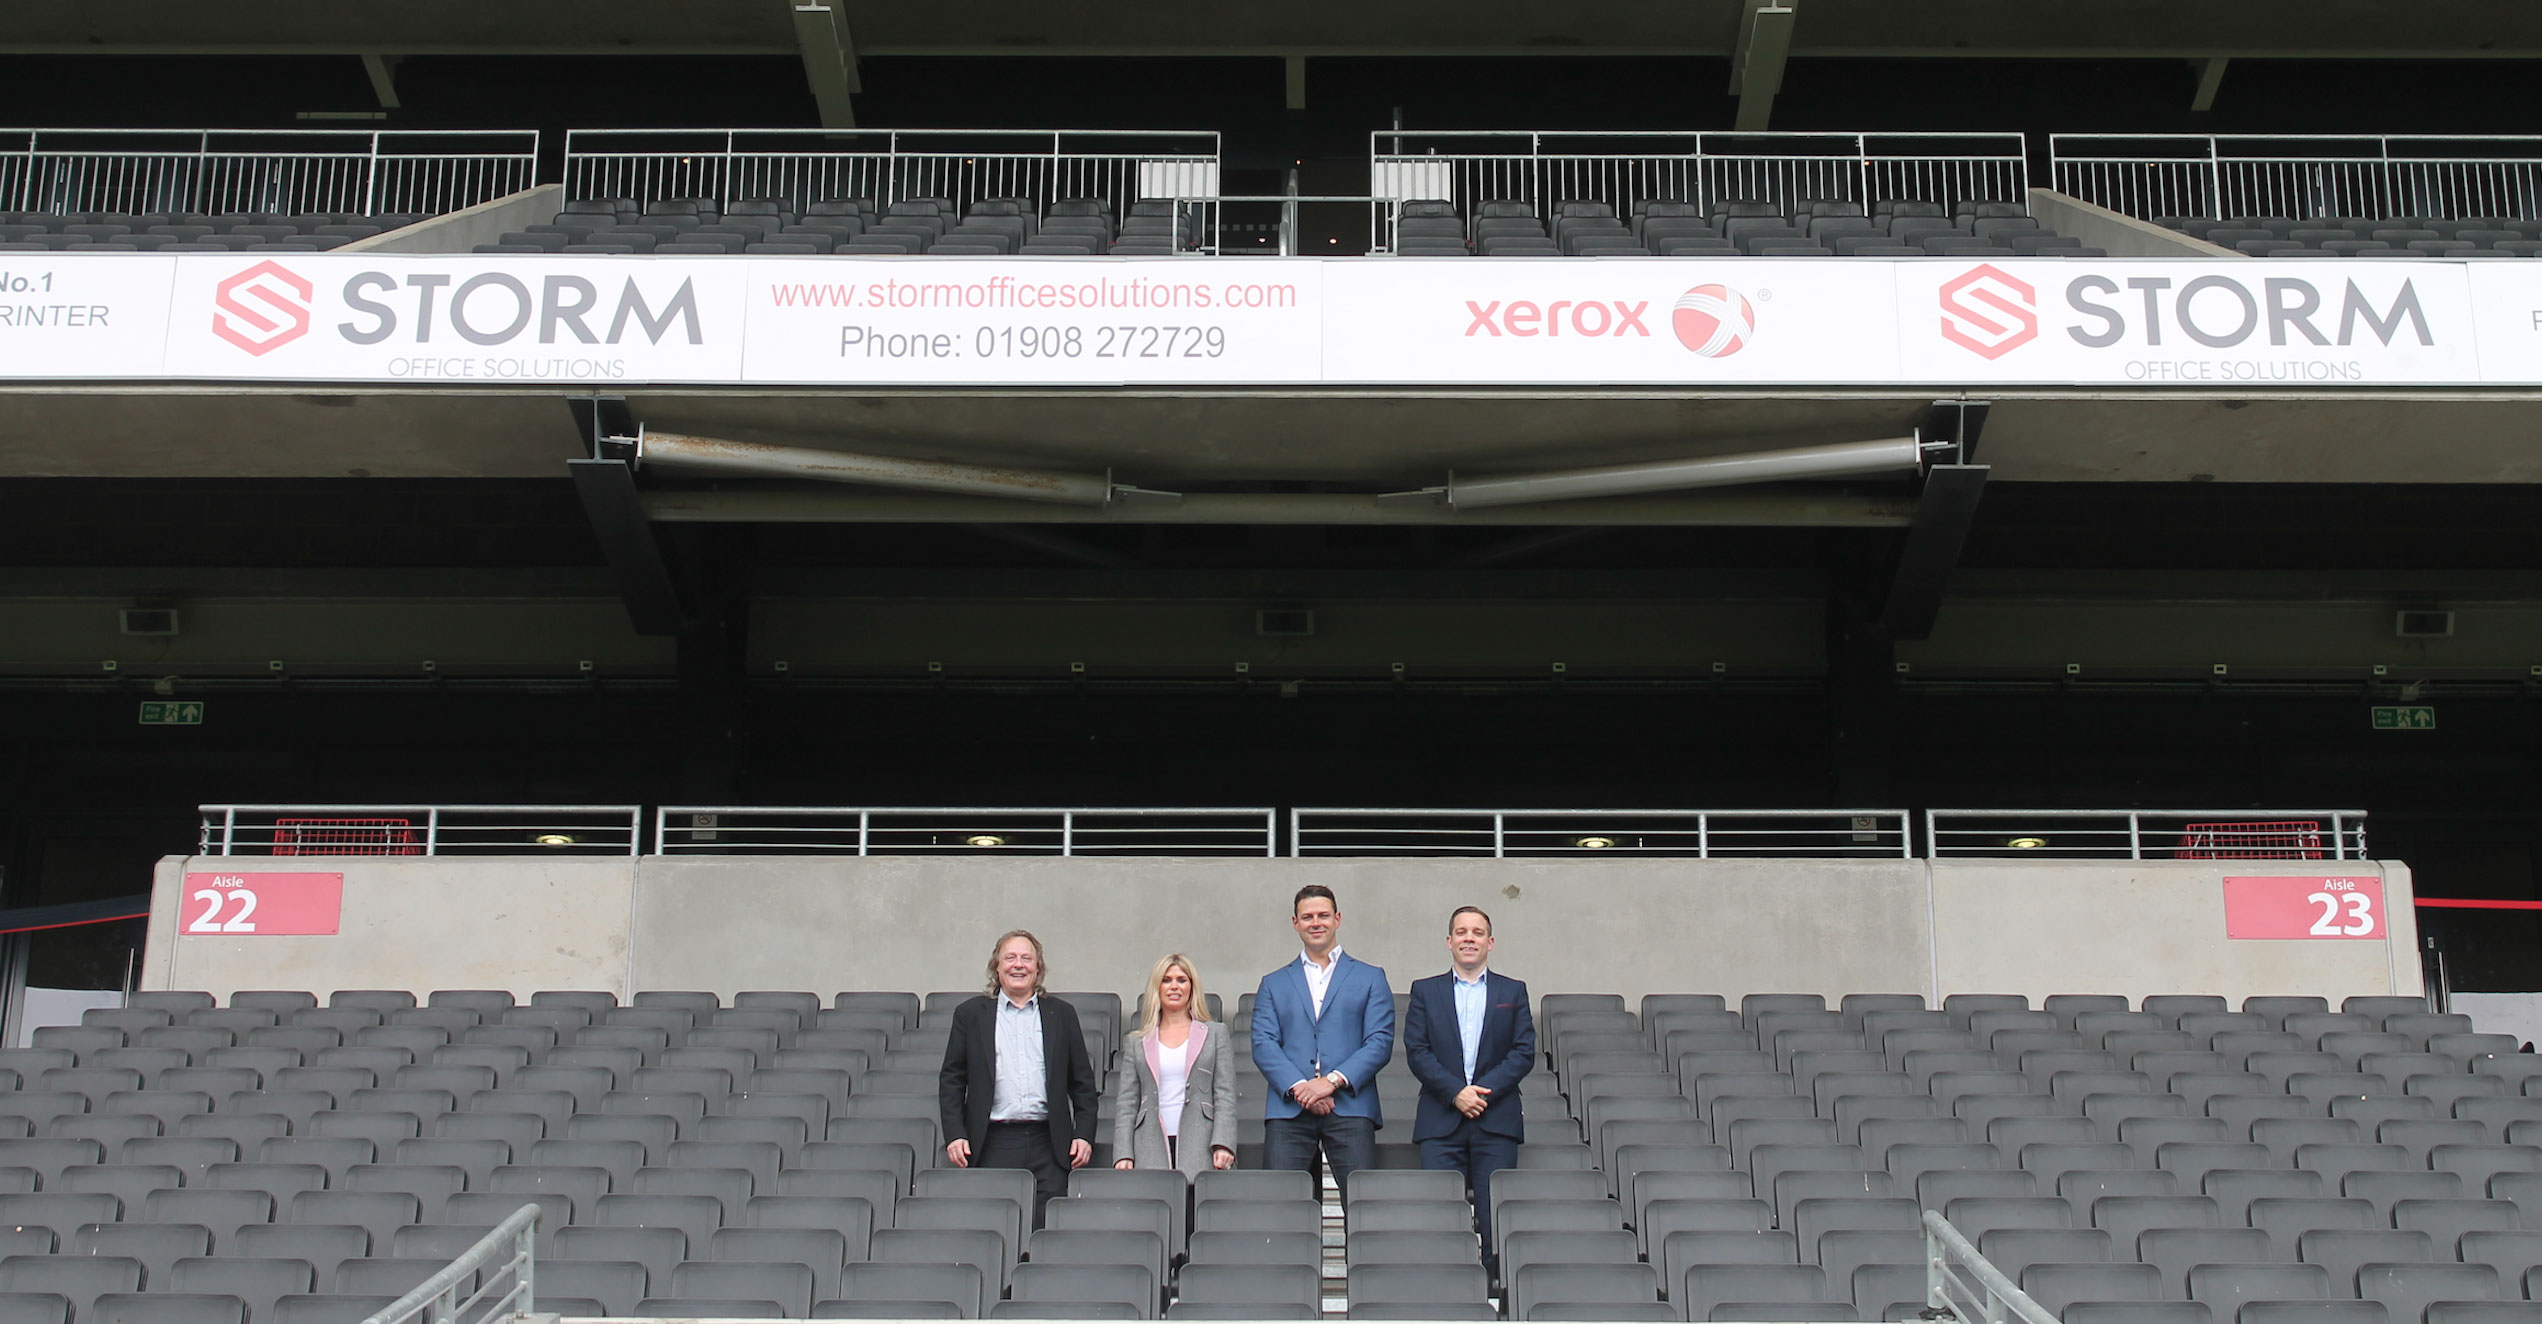 Storm Office Solutions with Mk Dons Chairman Pete Winkleman